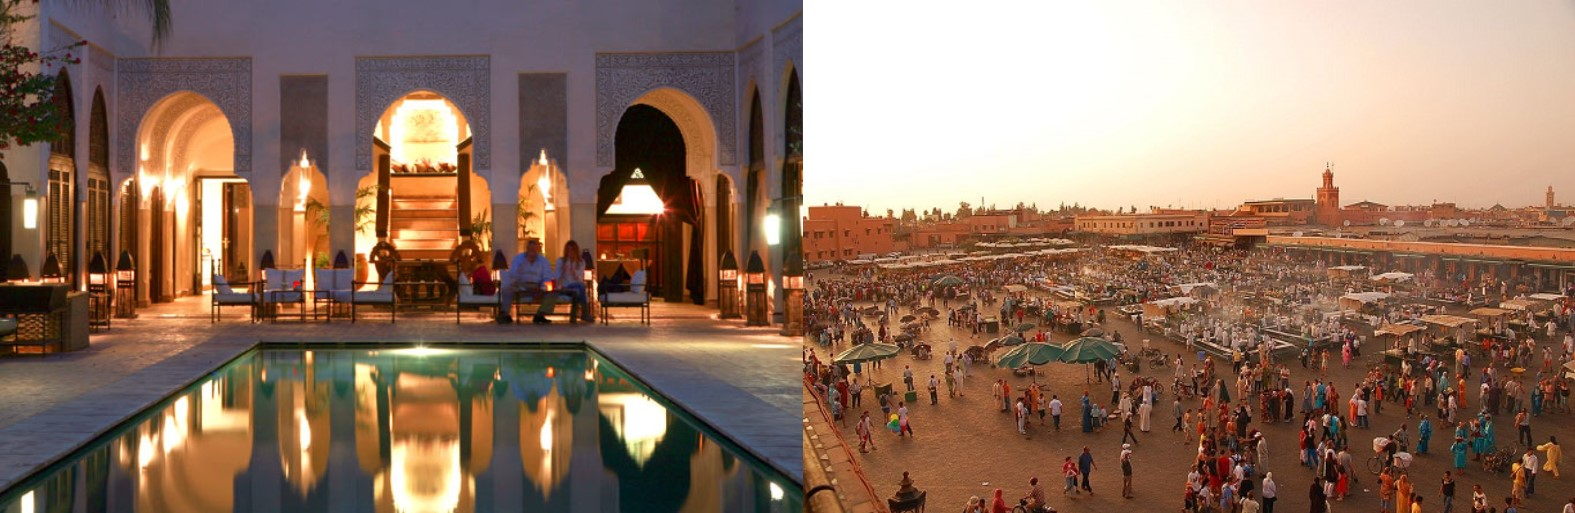 marrakech_noel_bon_plan